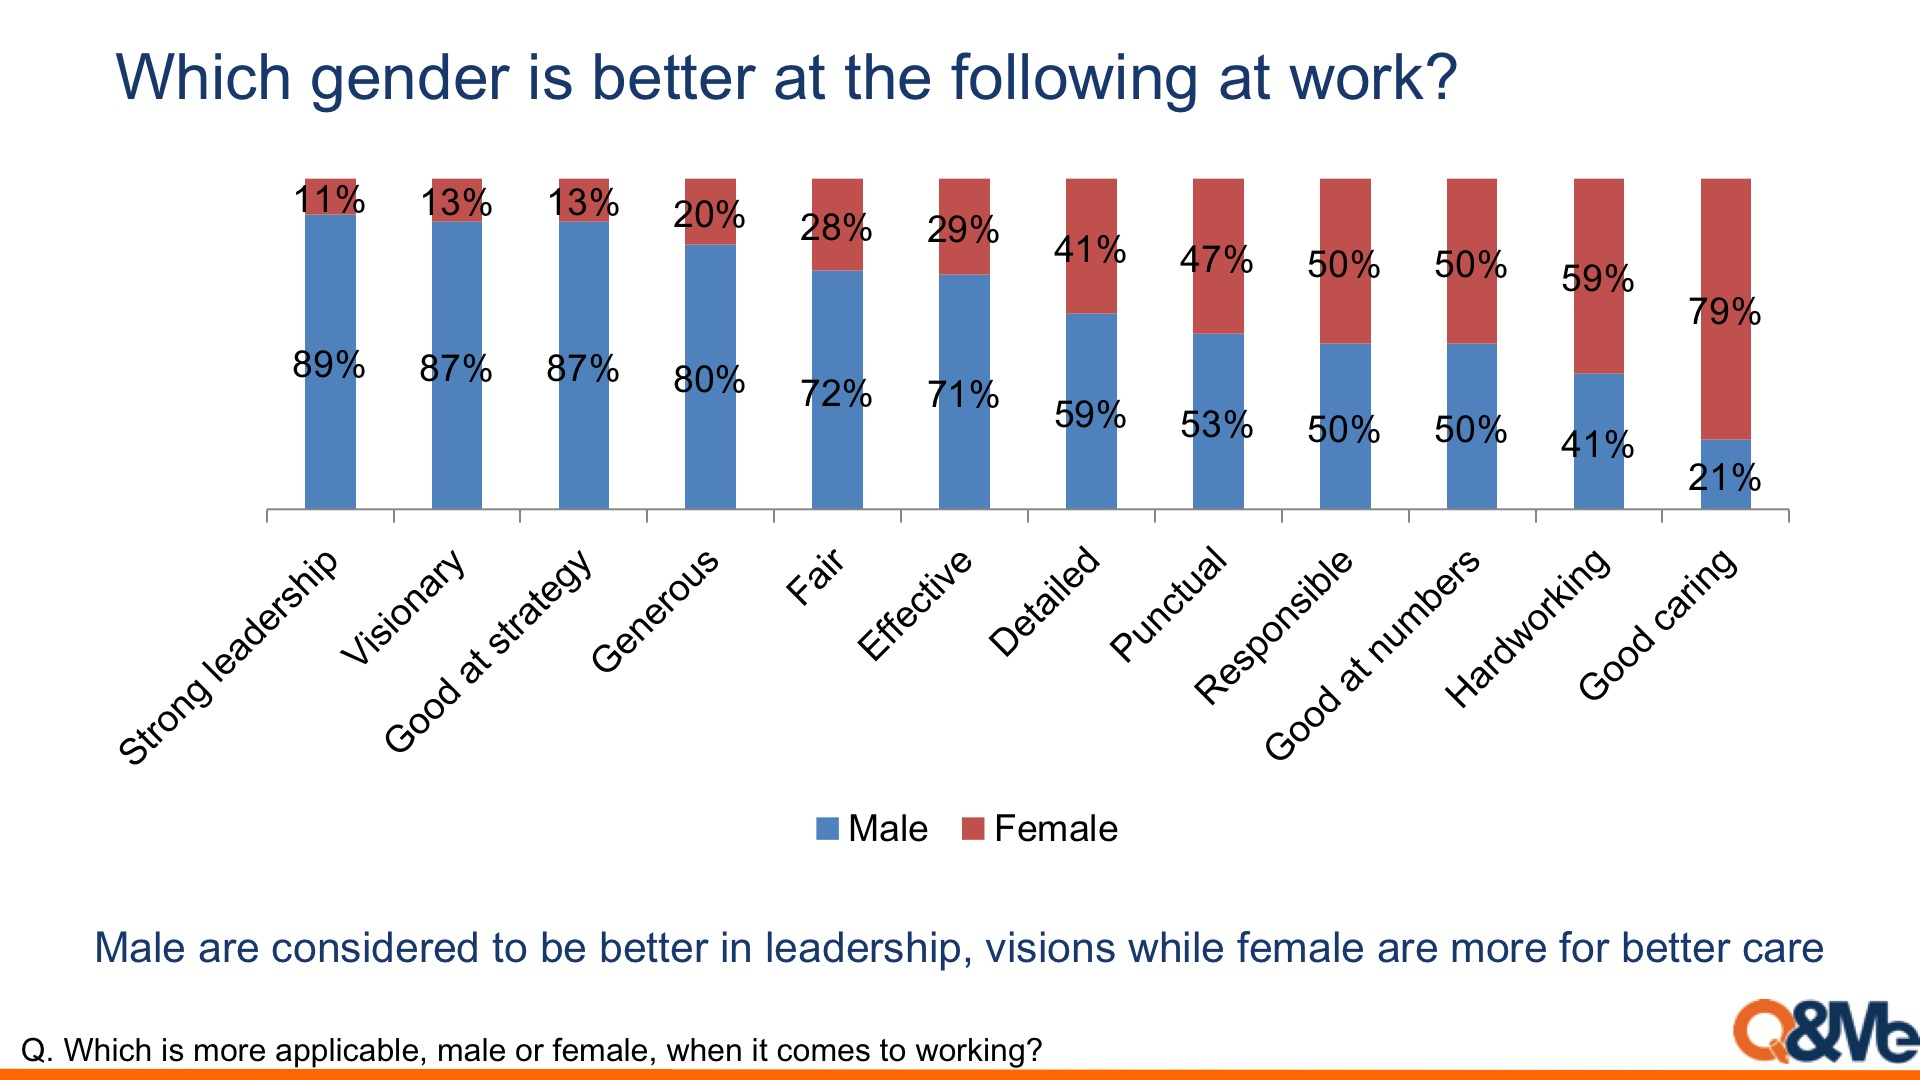 Work abilities evaluation between male and female